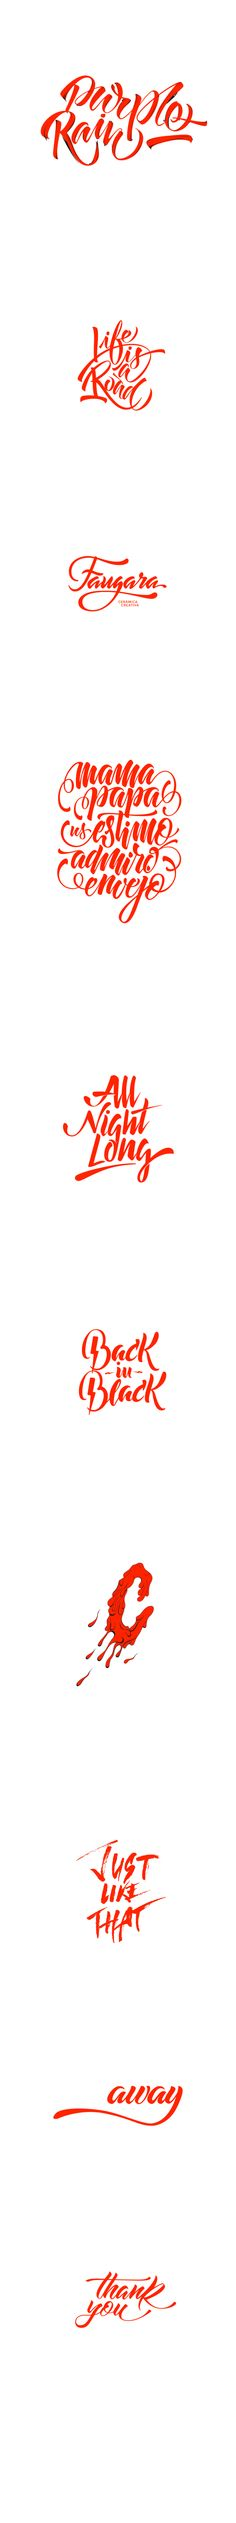 Lettering collection on Behance